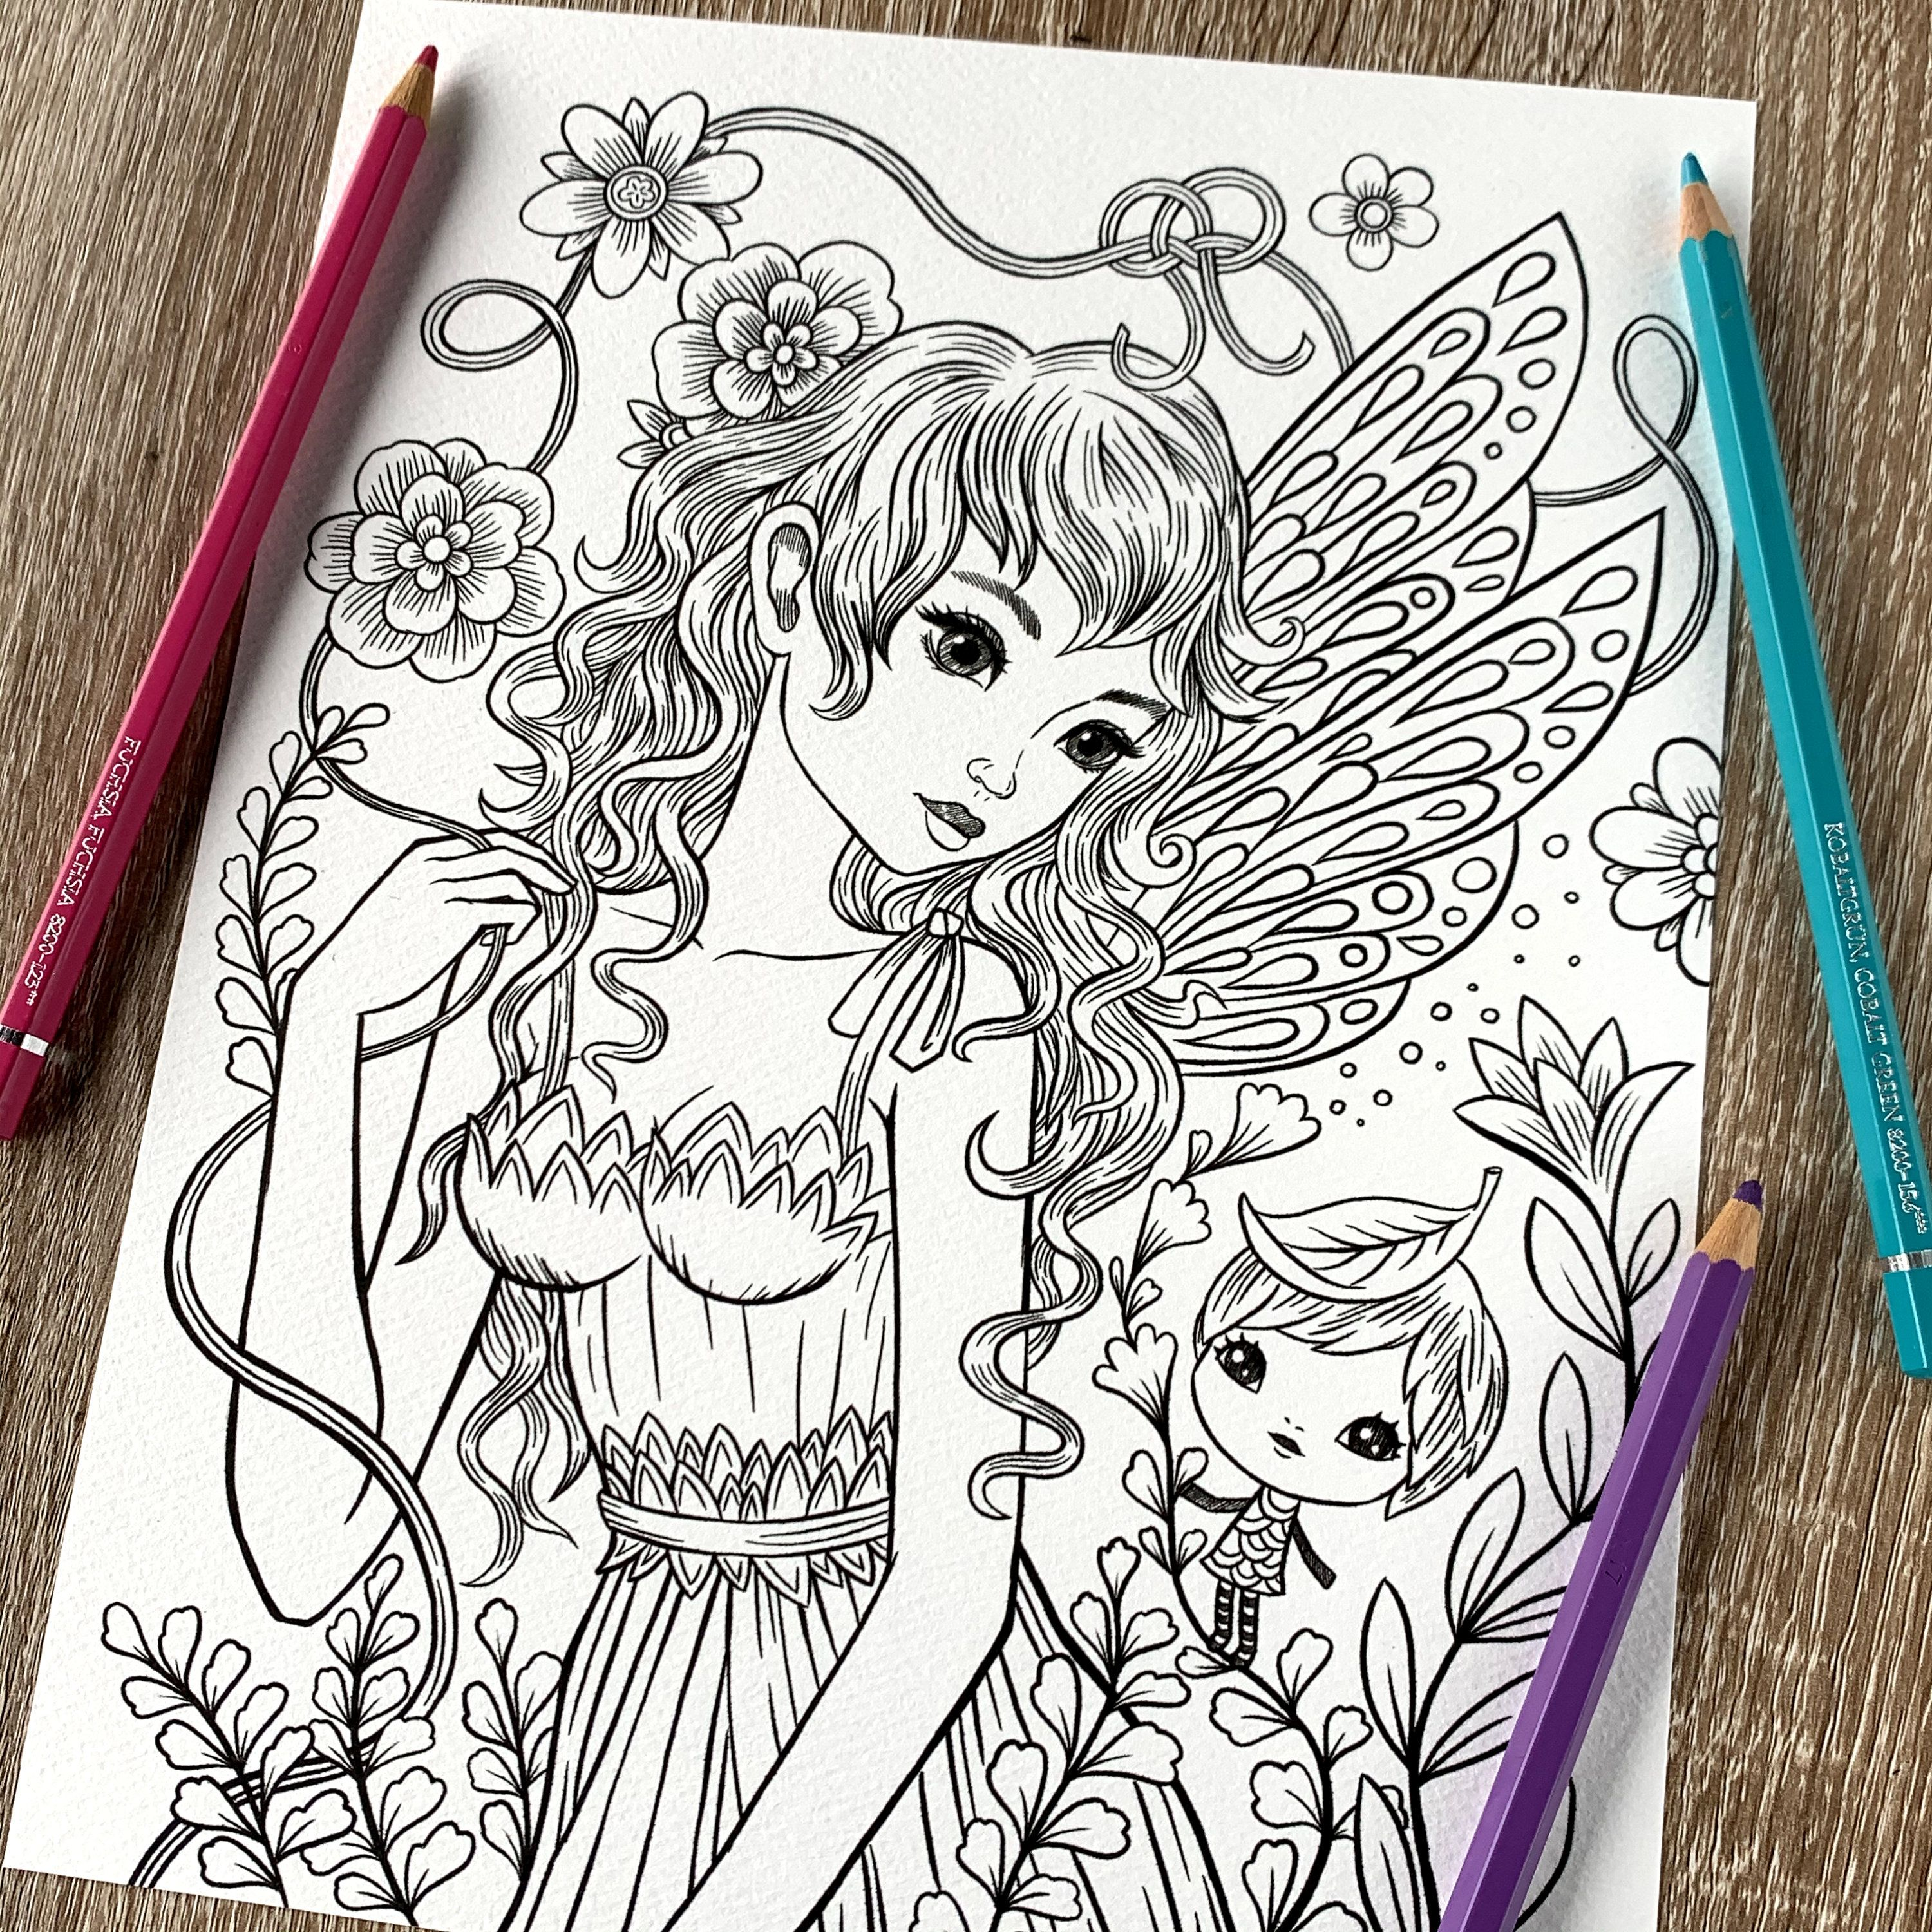 Petal Fairy By Jeremiah Ketner Print Digital Coloring Page Etsy In 2020 Coloring Pages Cute Coloring Pages Whimsical Illustration